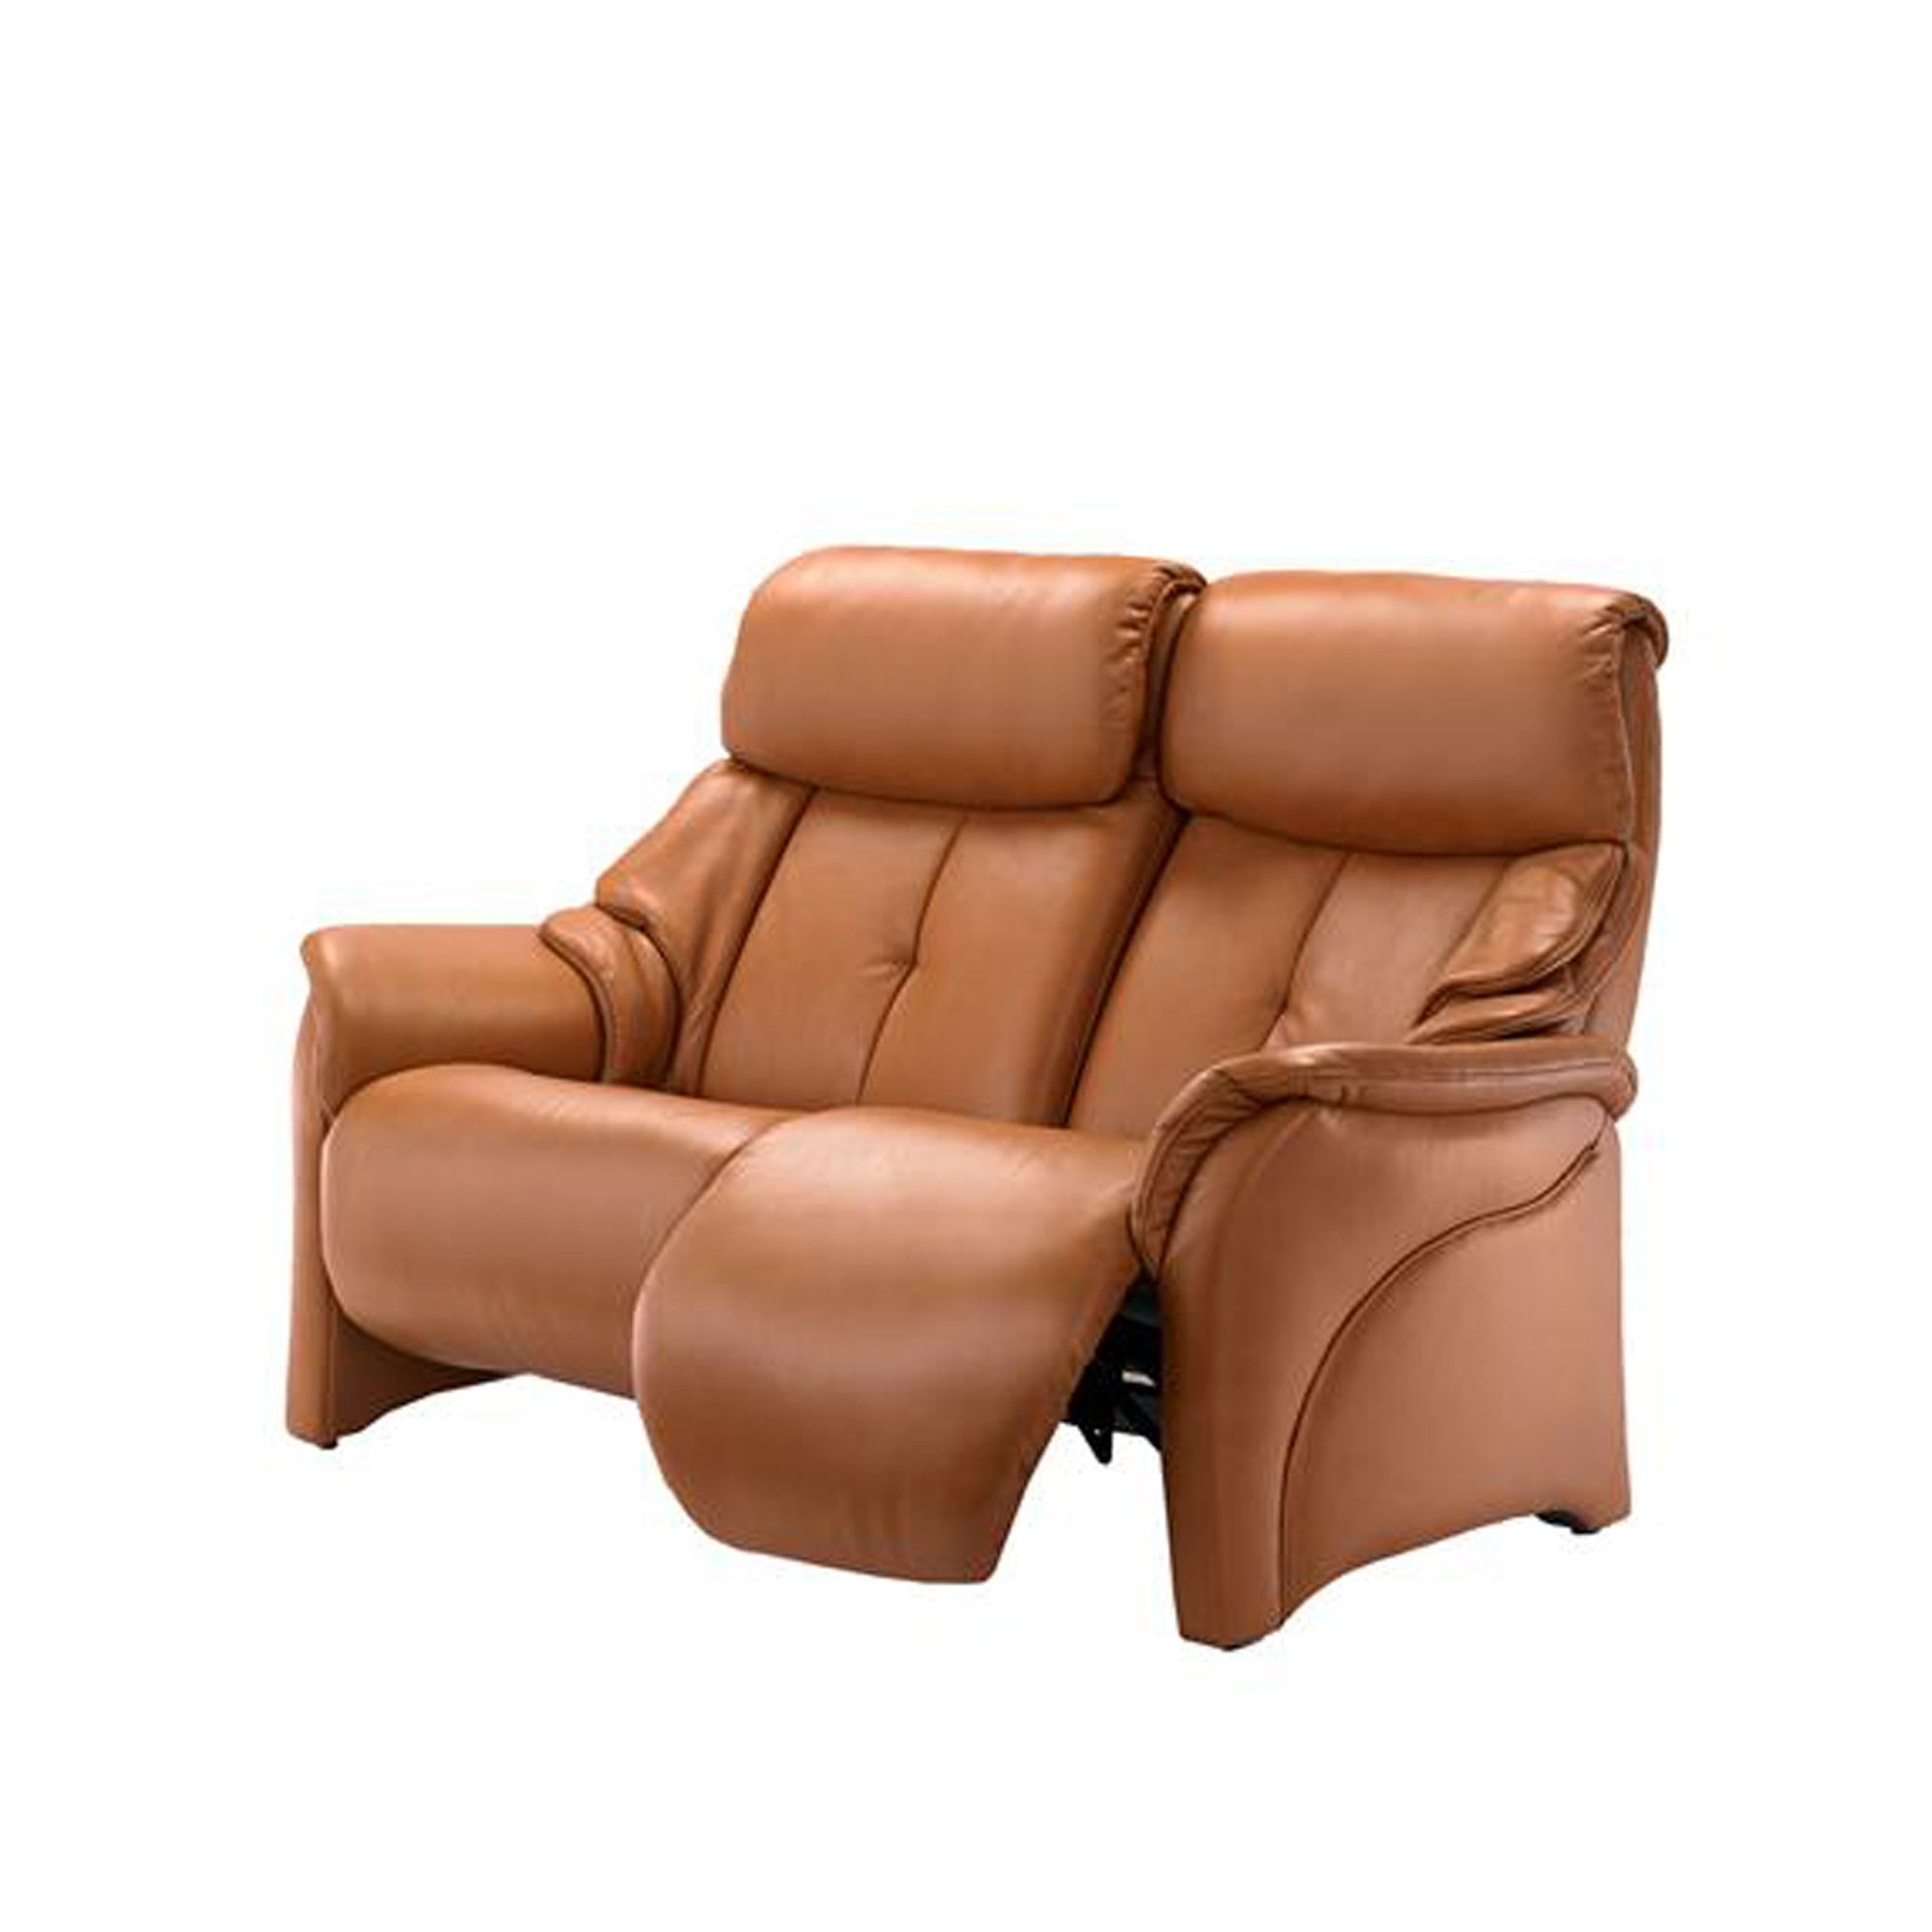 2019 Recliner Sofa Chairs In Himolla Chester  (View 1 of 20)